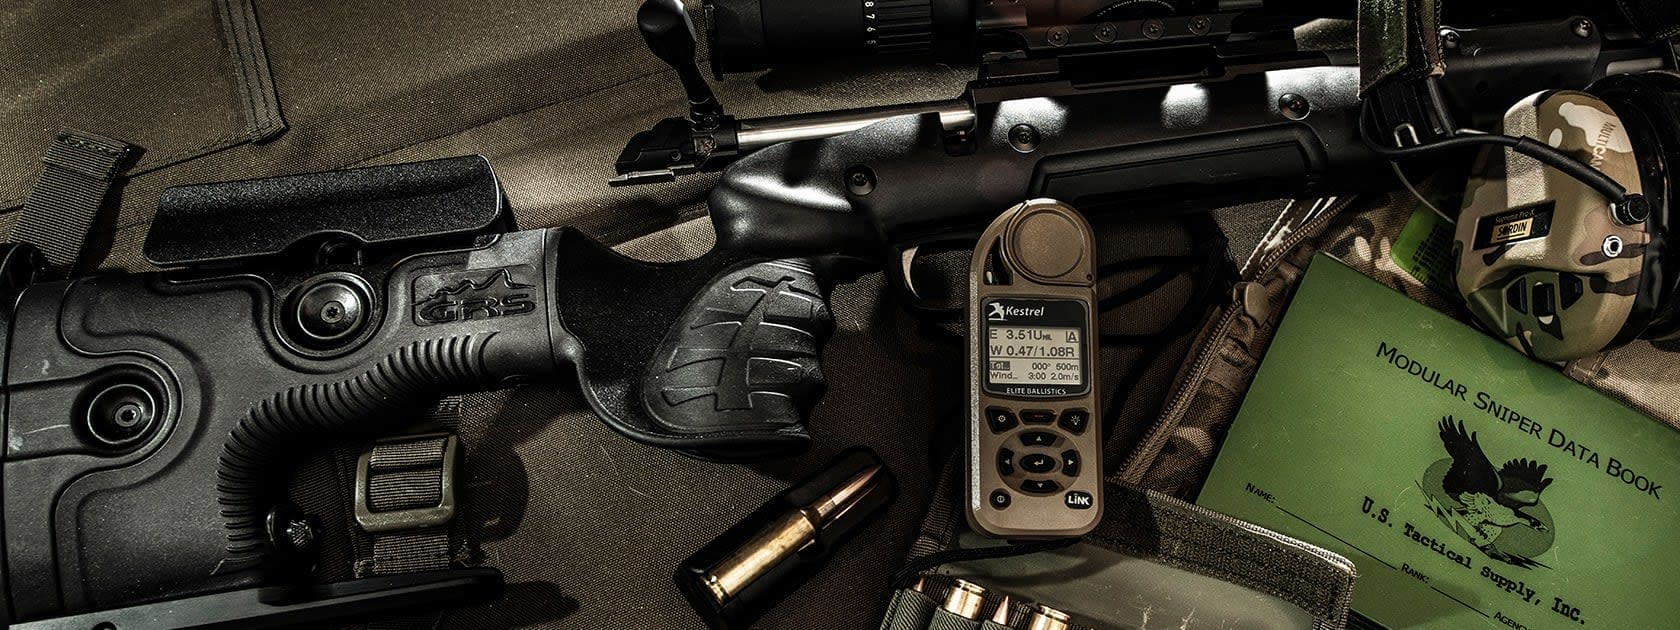 POPULAR STOCKS FOR SHOOTERS